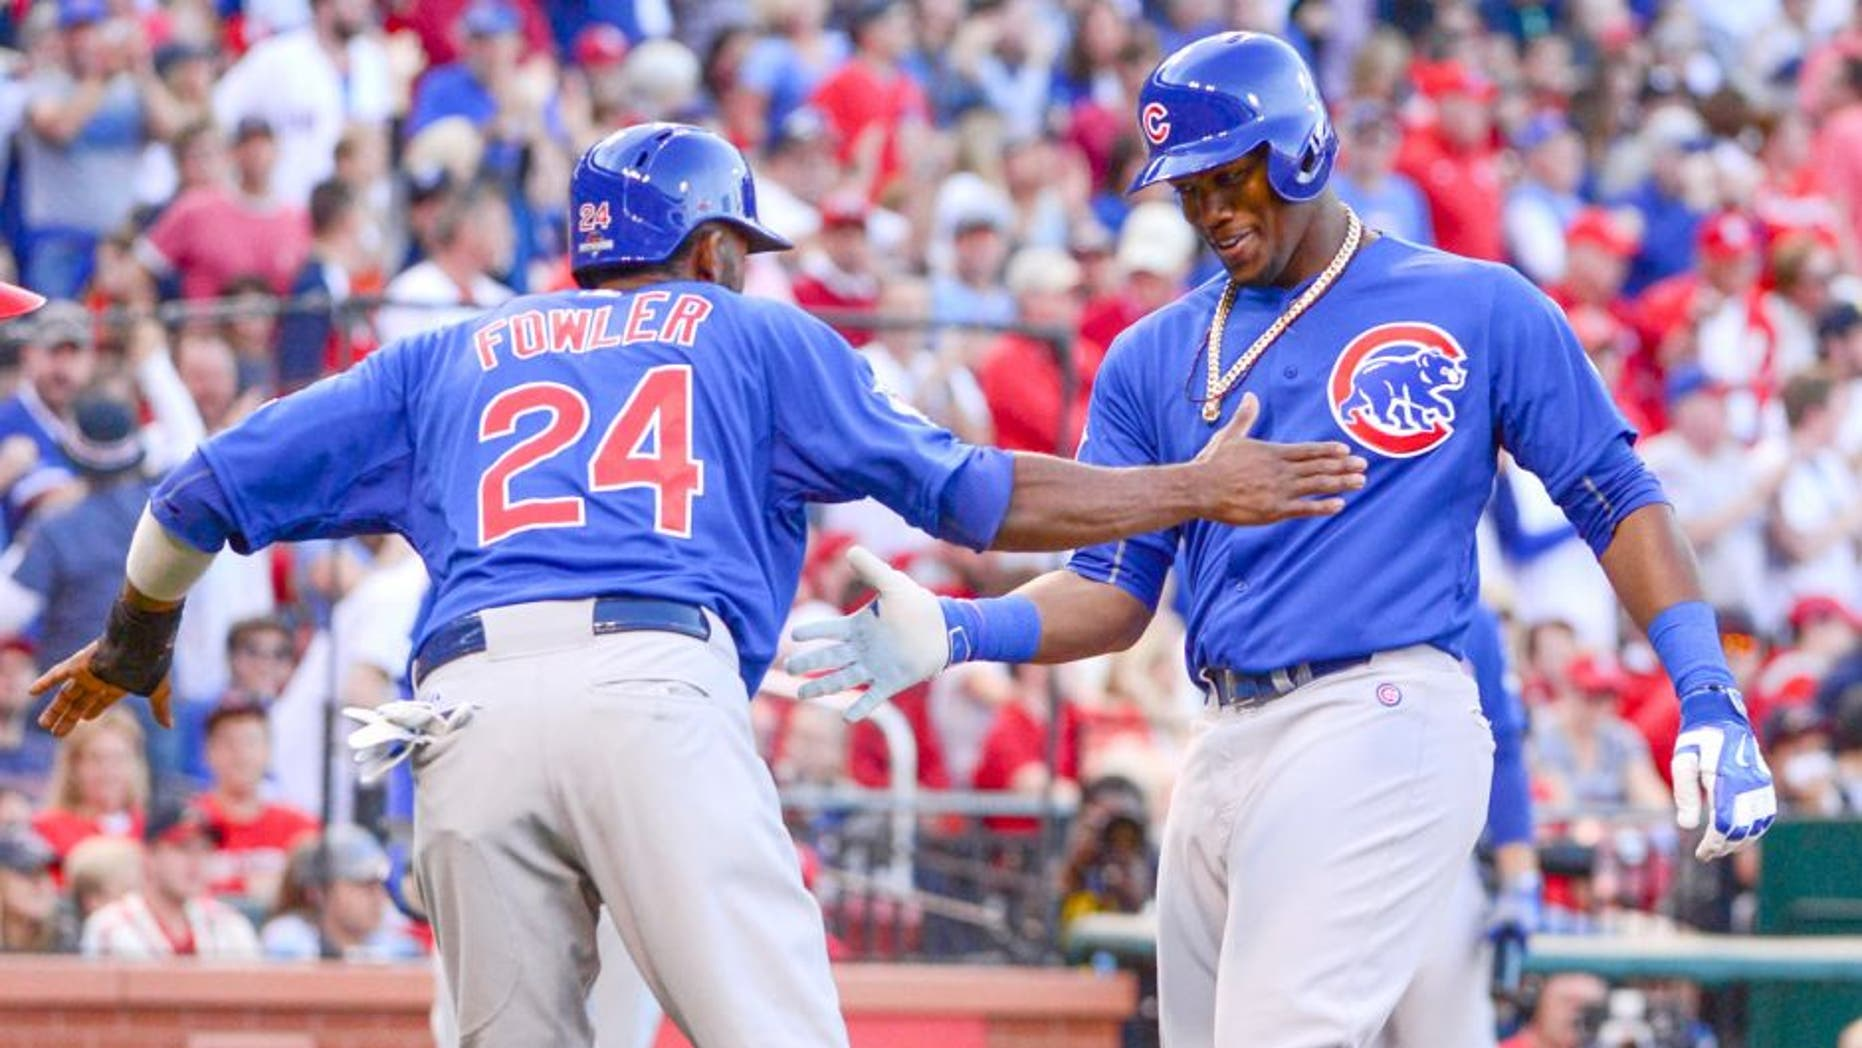 Oct 10, 2015; St. Louis, MO, USA; Chicago Cubs right fielder Jorge Soler (right) is congratulated by center fielder Dexter Fowler (24) for both scoring on a two-run home run by Soler against the St. Louis Cardinals during the second inning in game two of the NLDS at Busch Stadium. Mandatory Credit: Jeff Curry-USA TODAY Sports